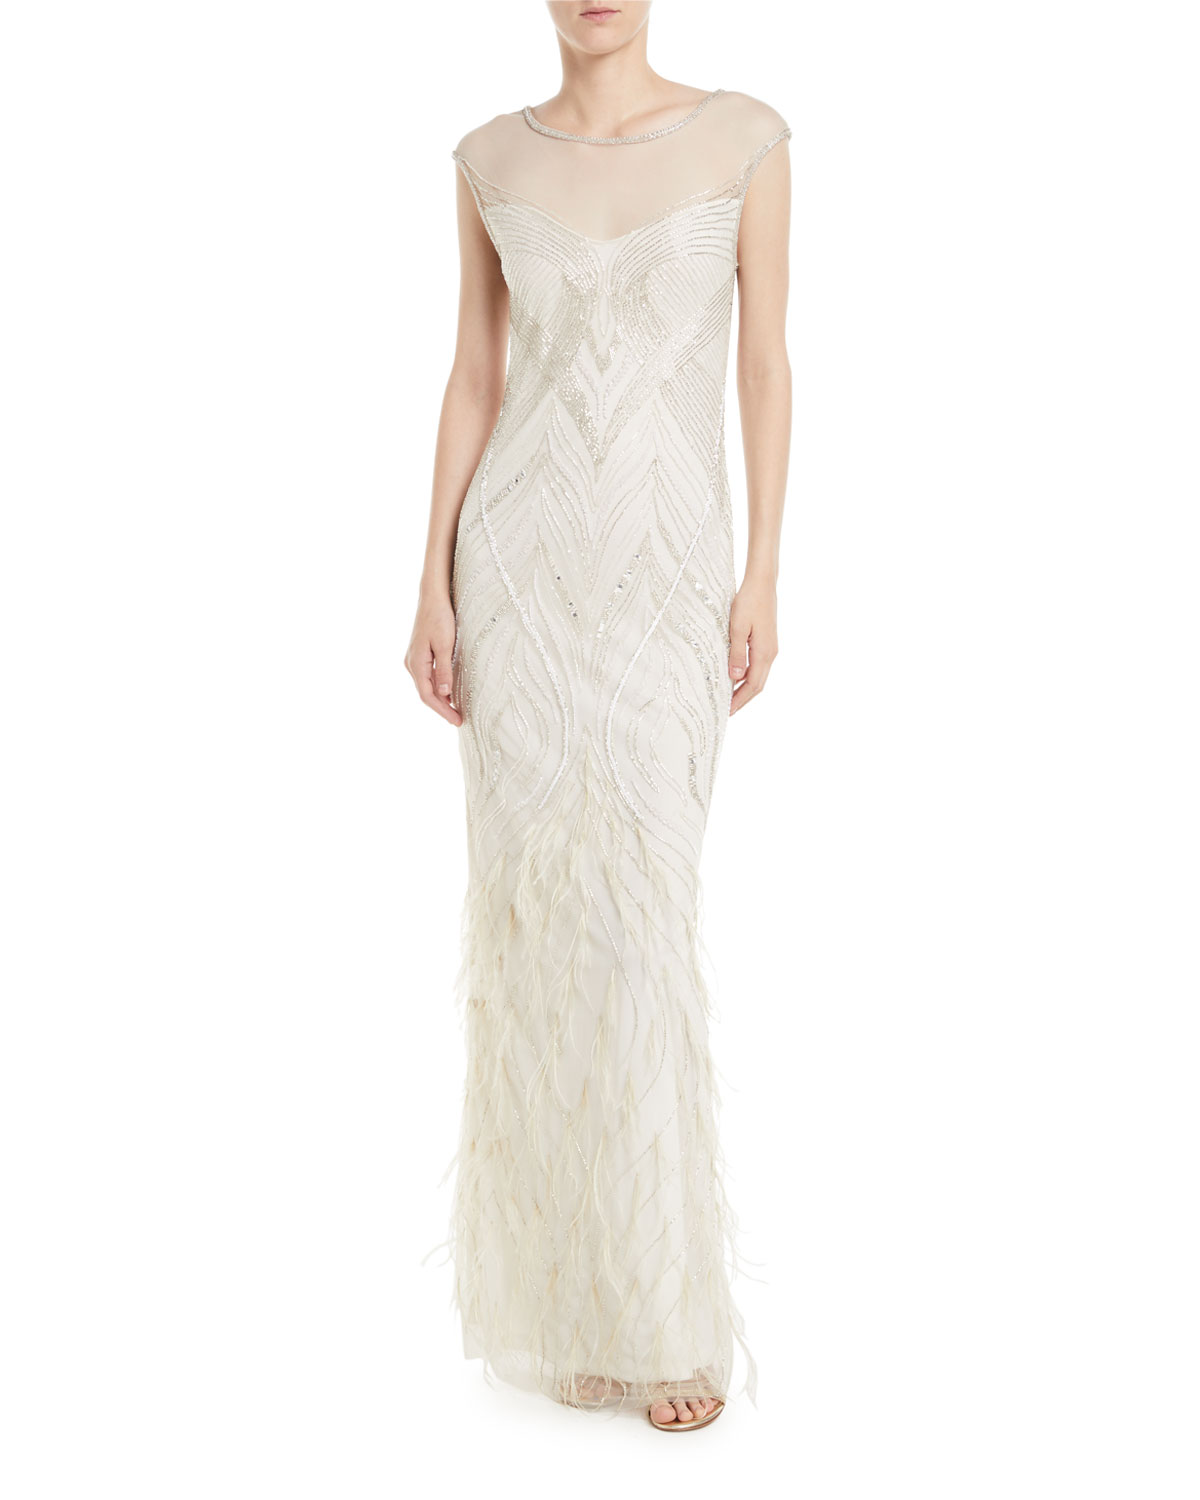 Parker Black Allie Beaded Gown w/ Feather Detailing | Neiman Marcus